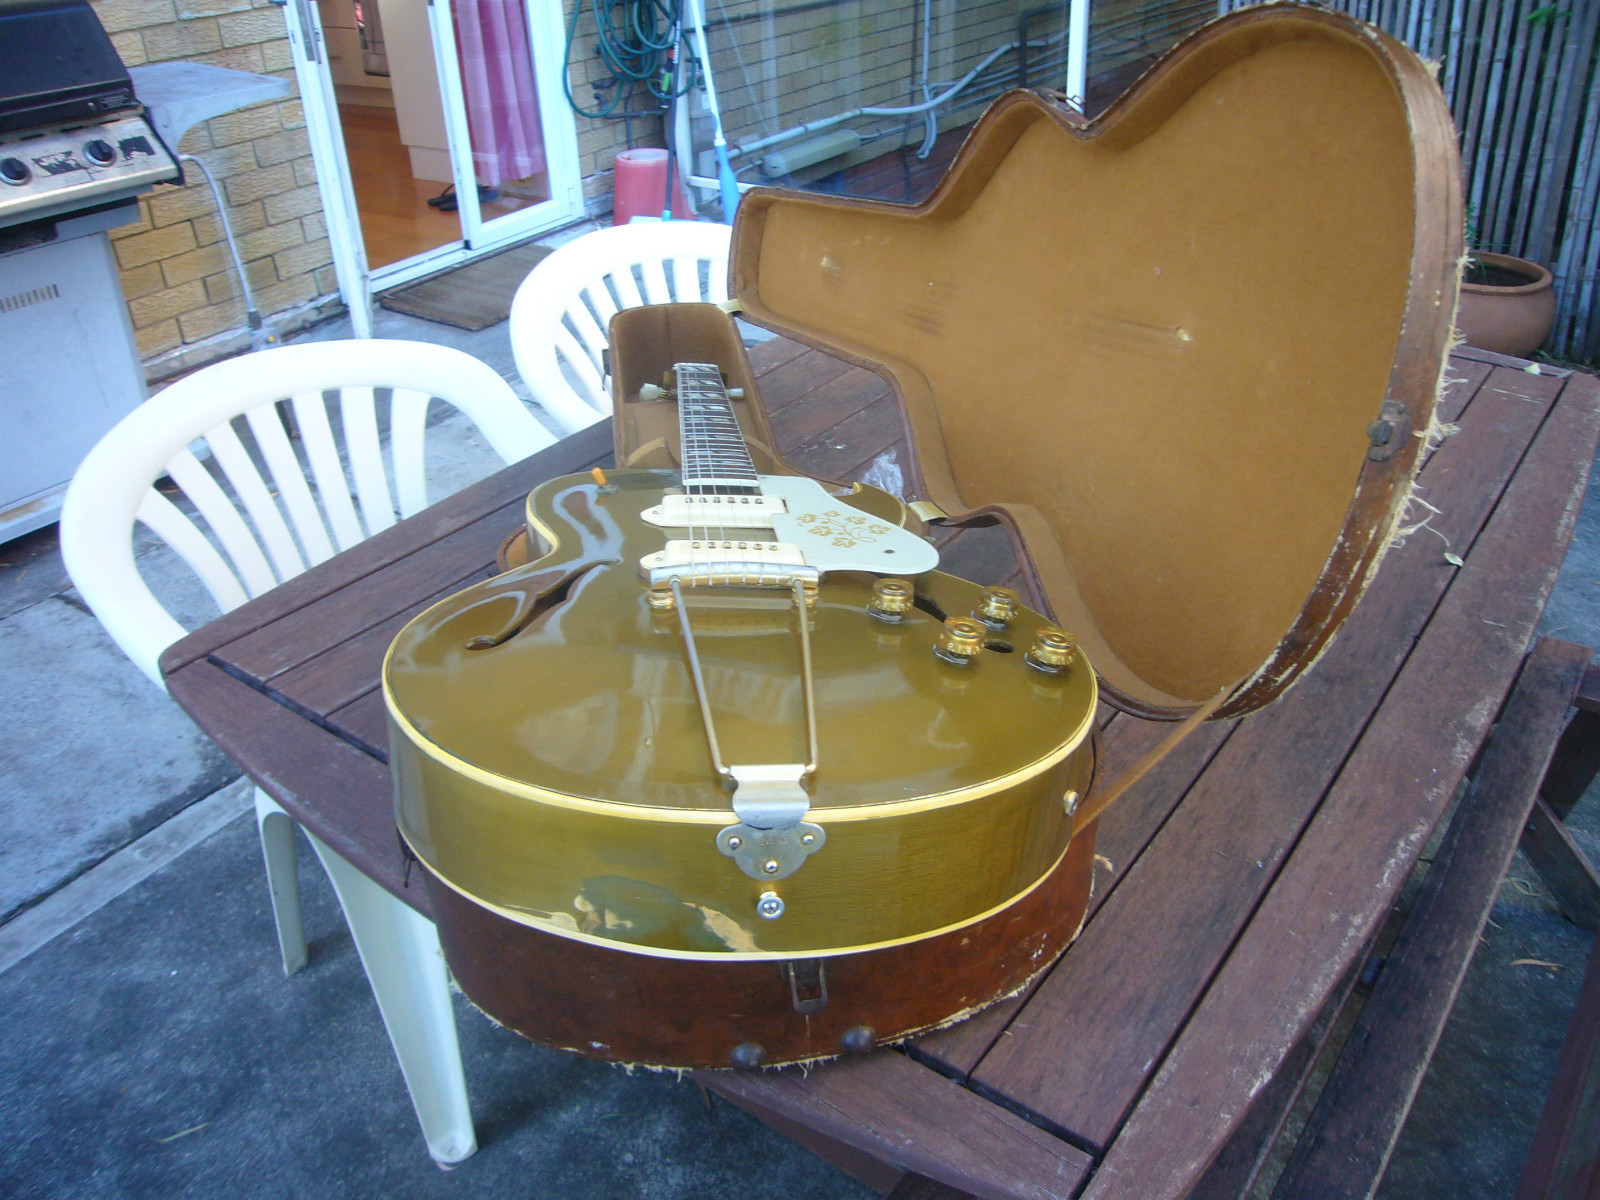 Vintage Guitarz May 2013 1965 Gibson Es345 Wiring Repair Chicago Fret Works Guitar Neck And The Back Of Headstock Captured In Pictures Gold Finish Has Been Worn Away Some Places But This Is Normal For These Guitars